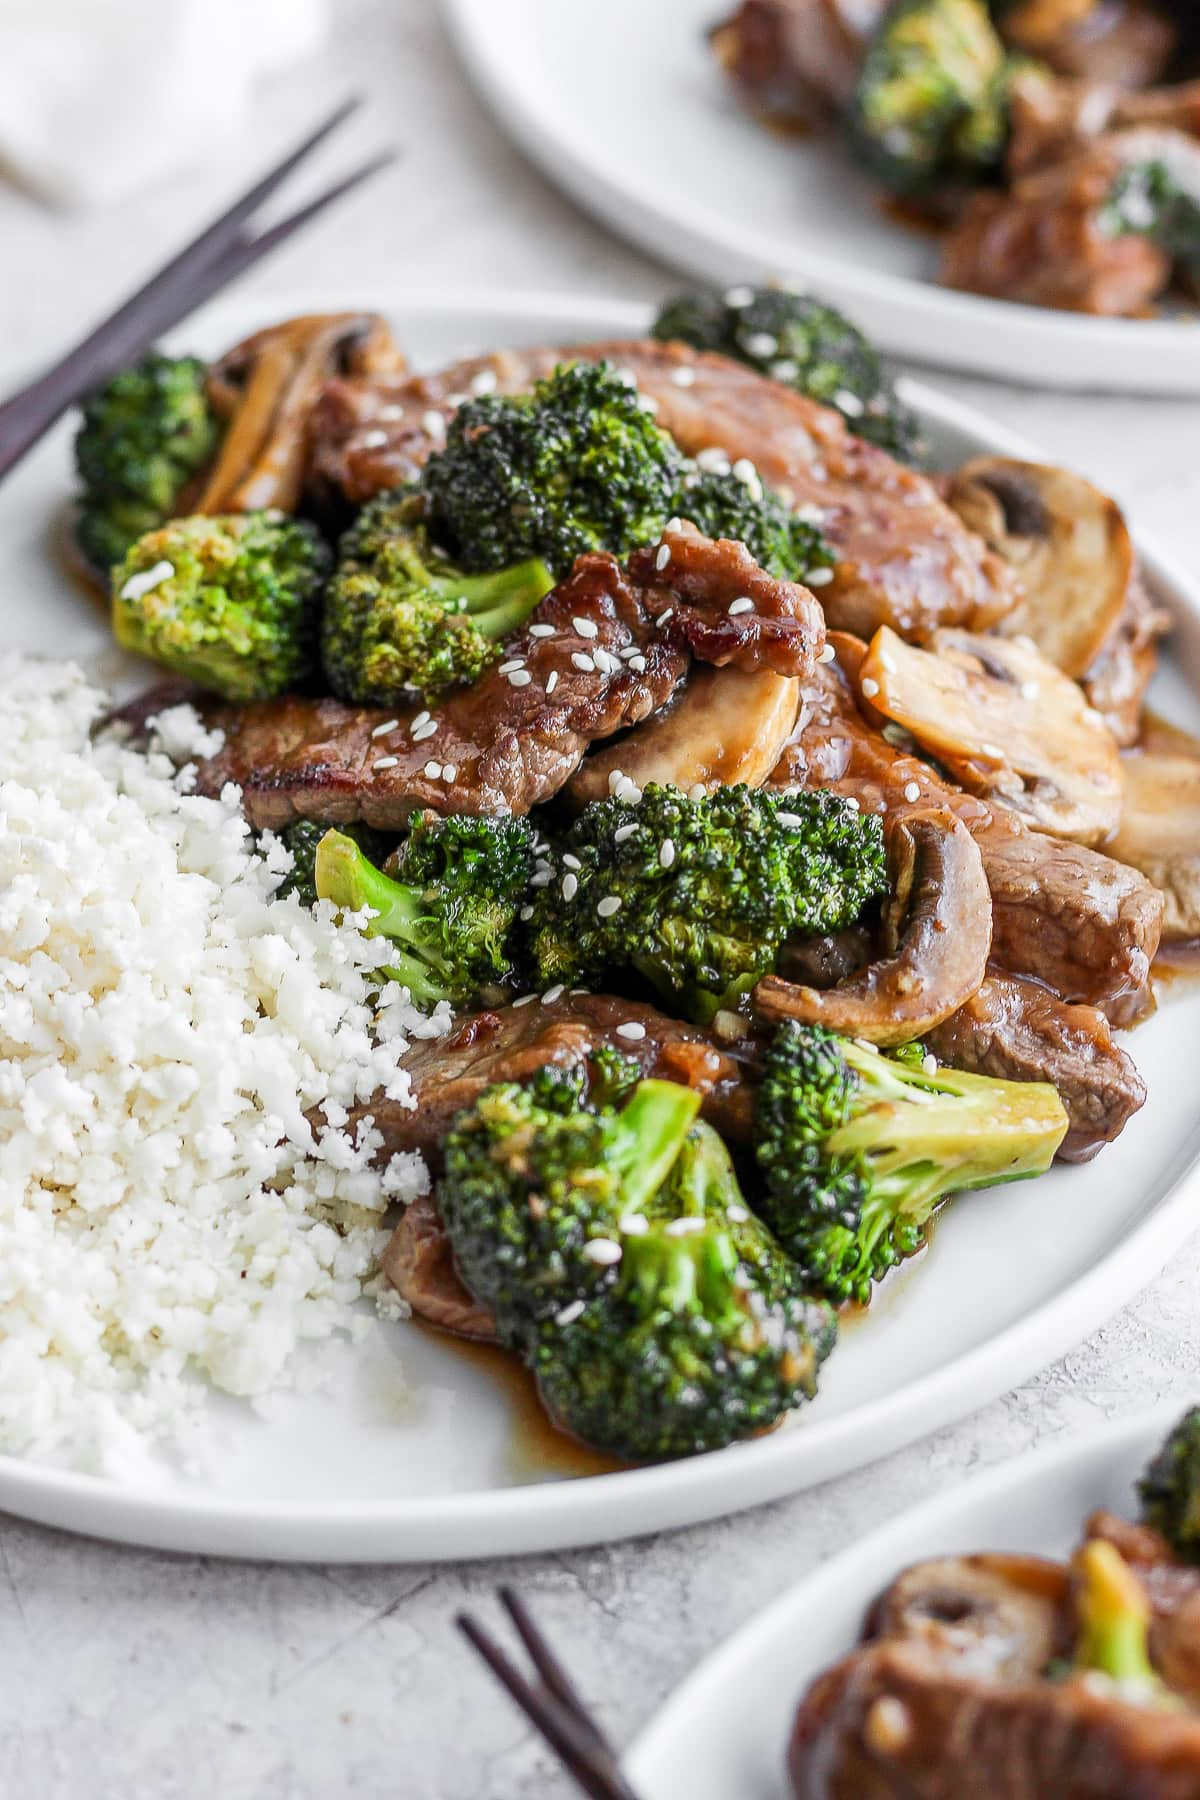 Plate of healthy beef and broccoli.